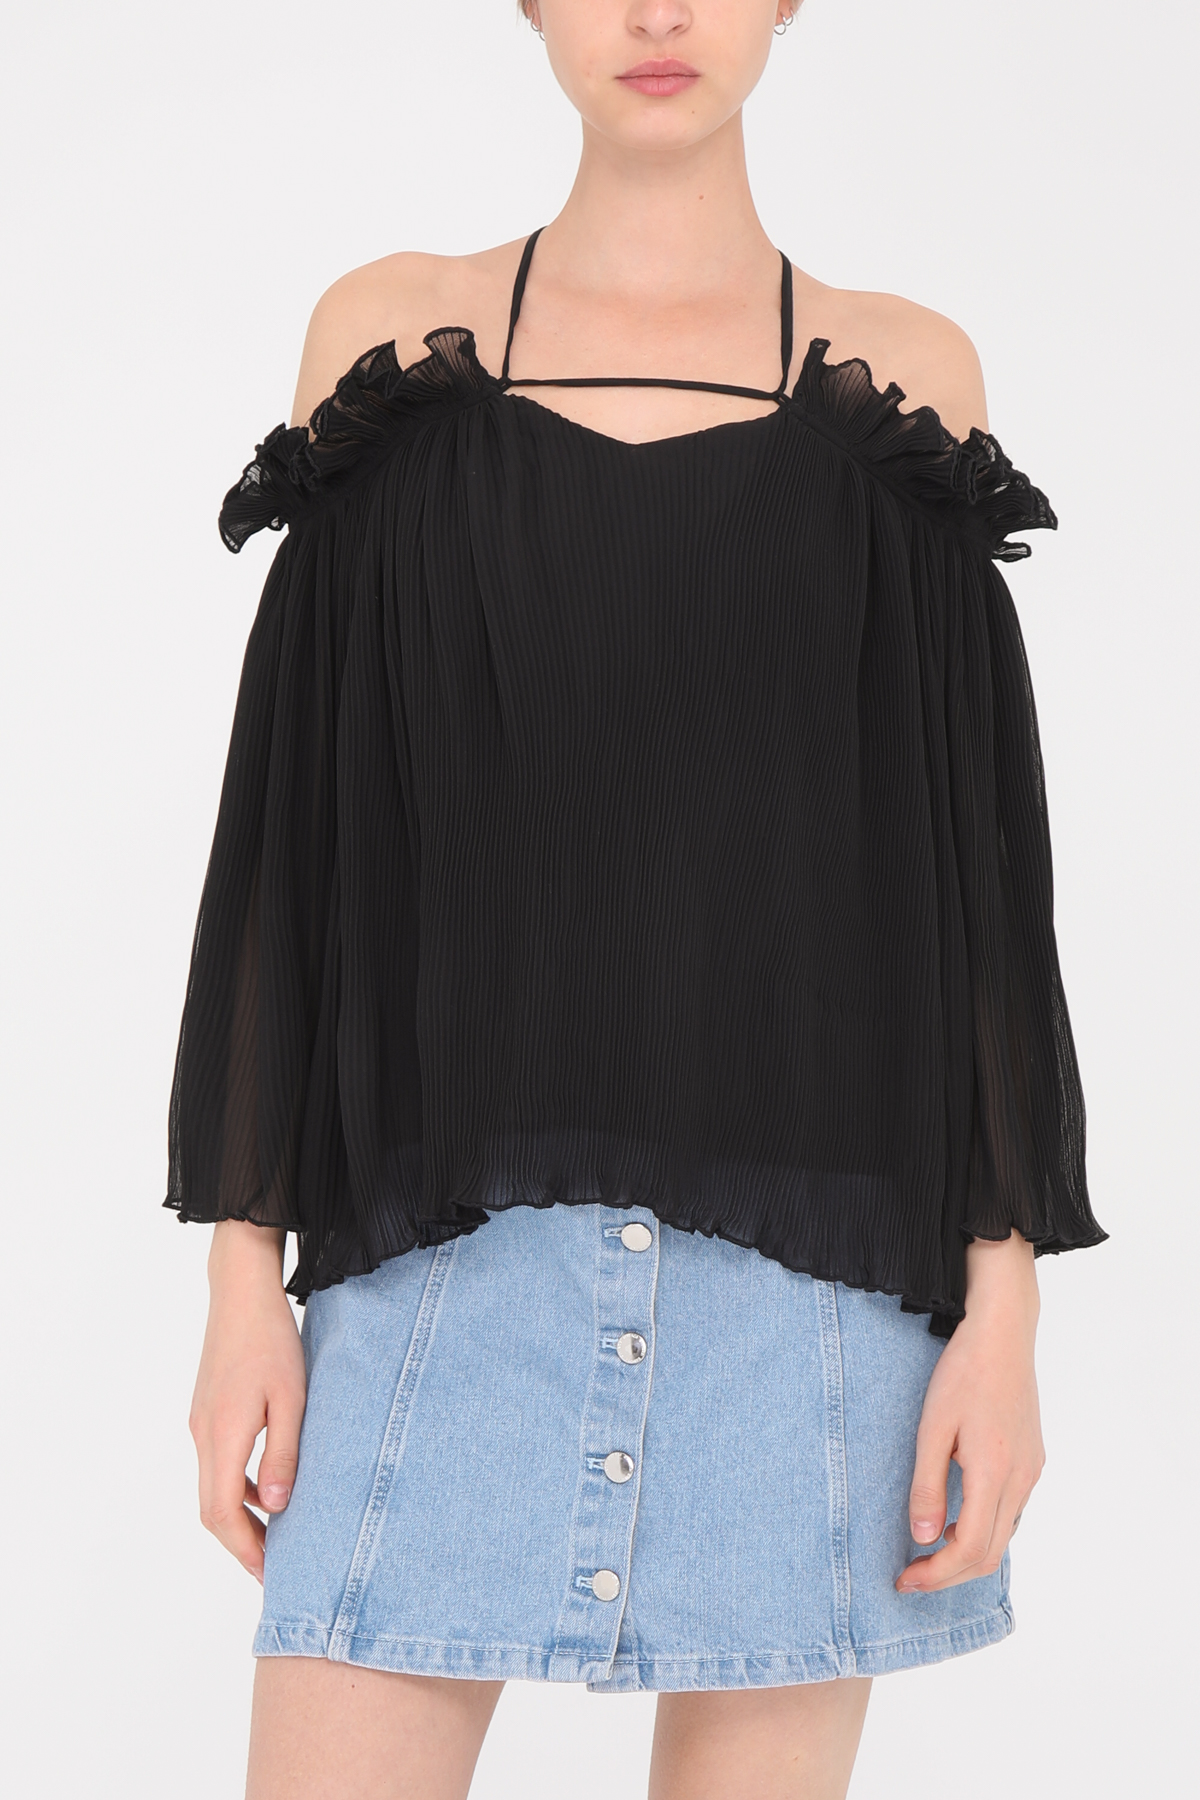 Blouses Femme Noir Retro & Icone H002 #c eFashion Paris